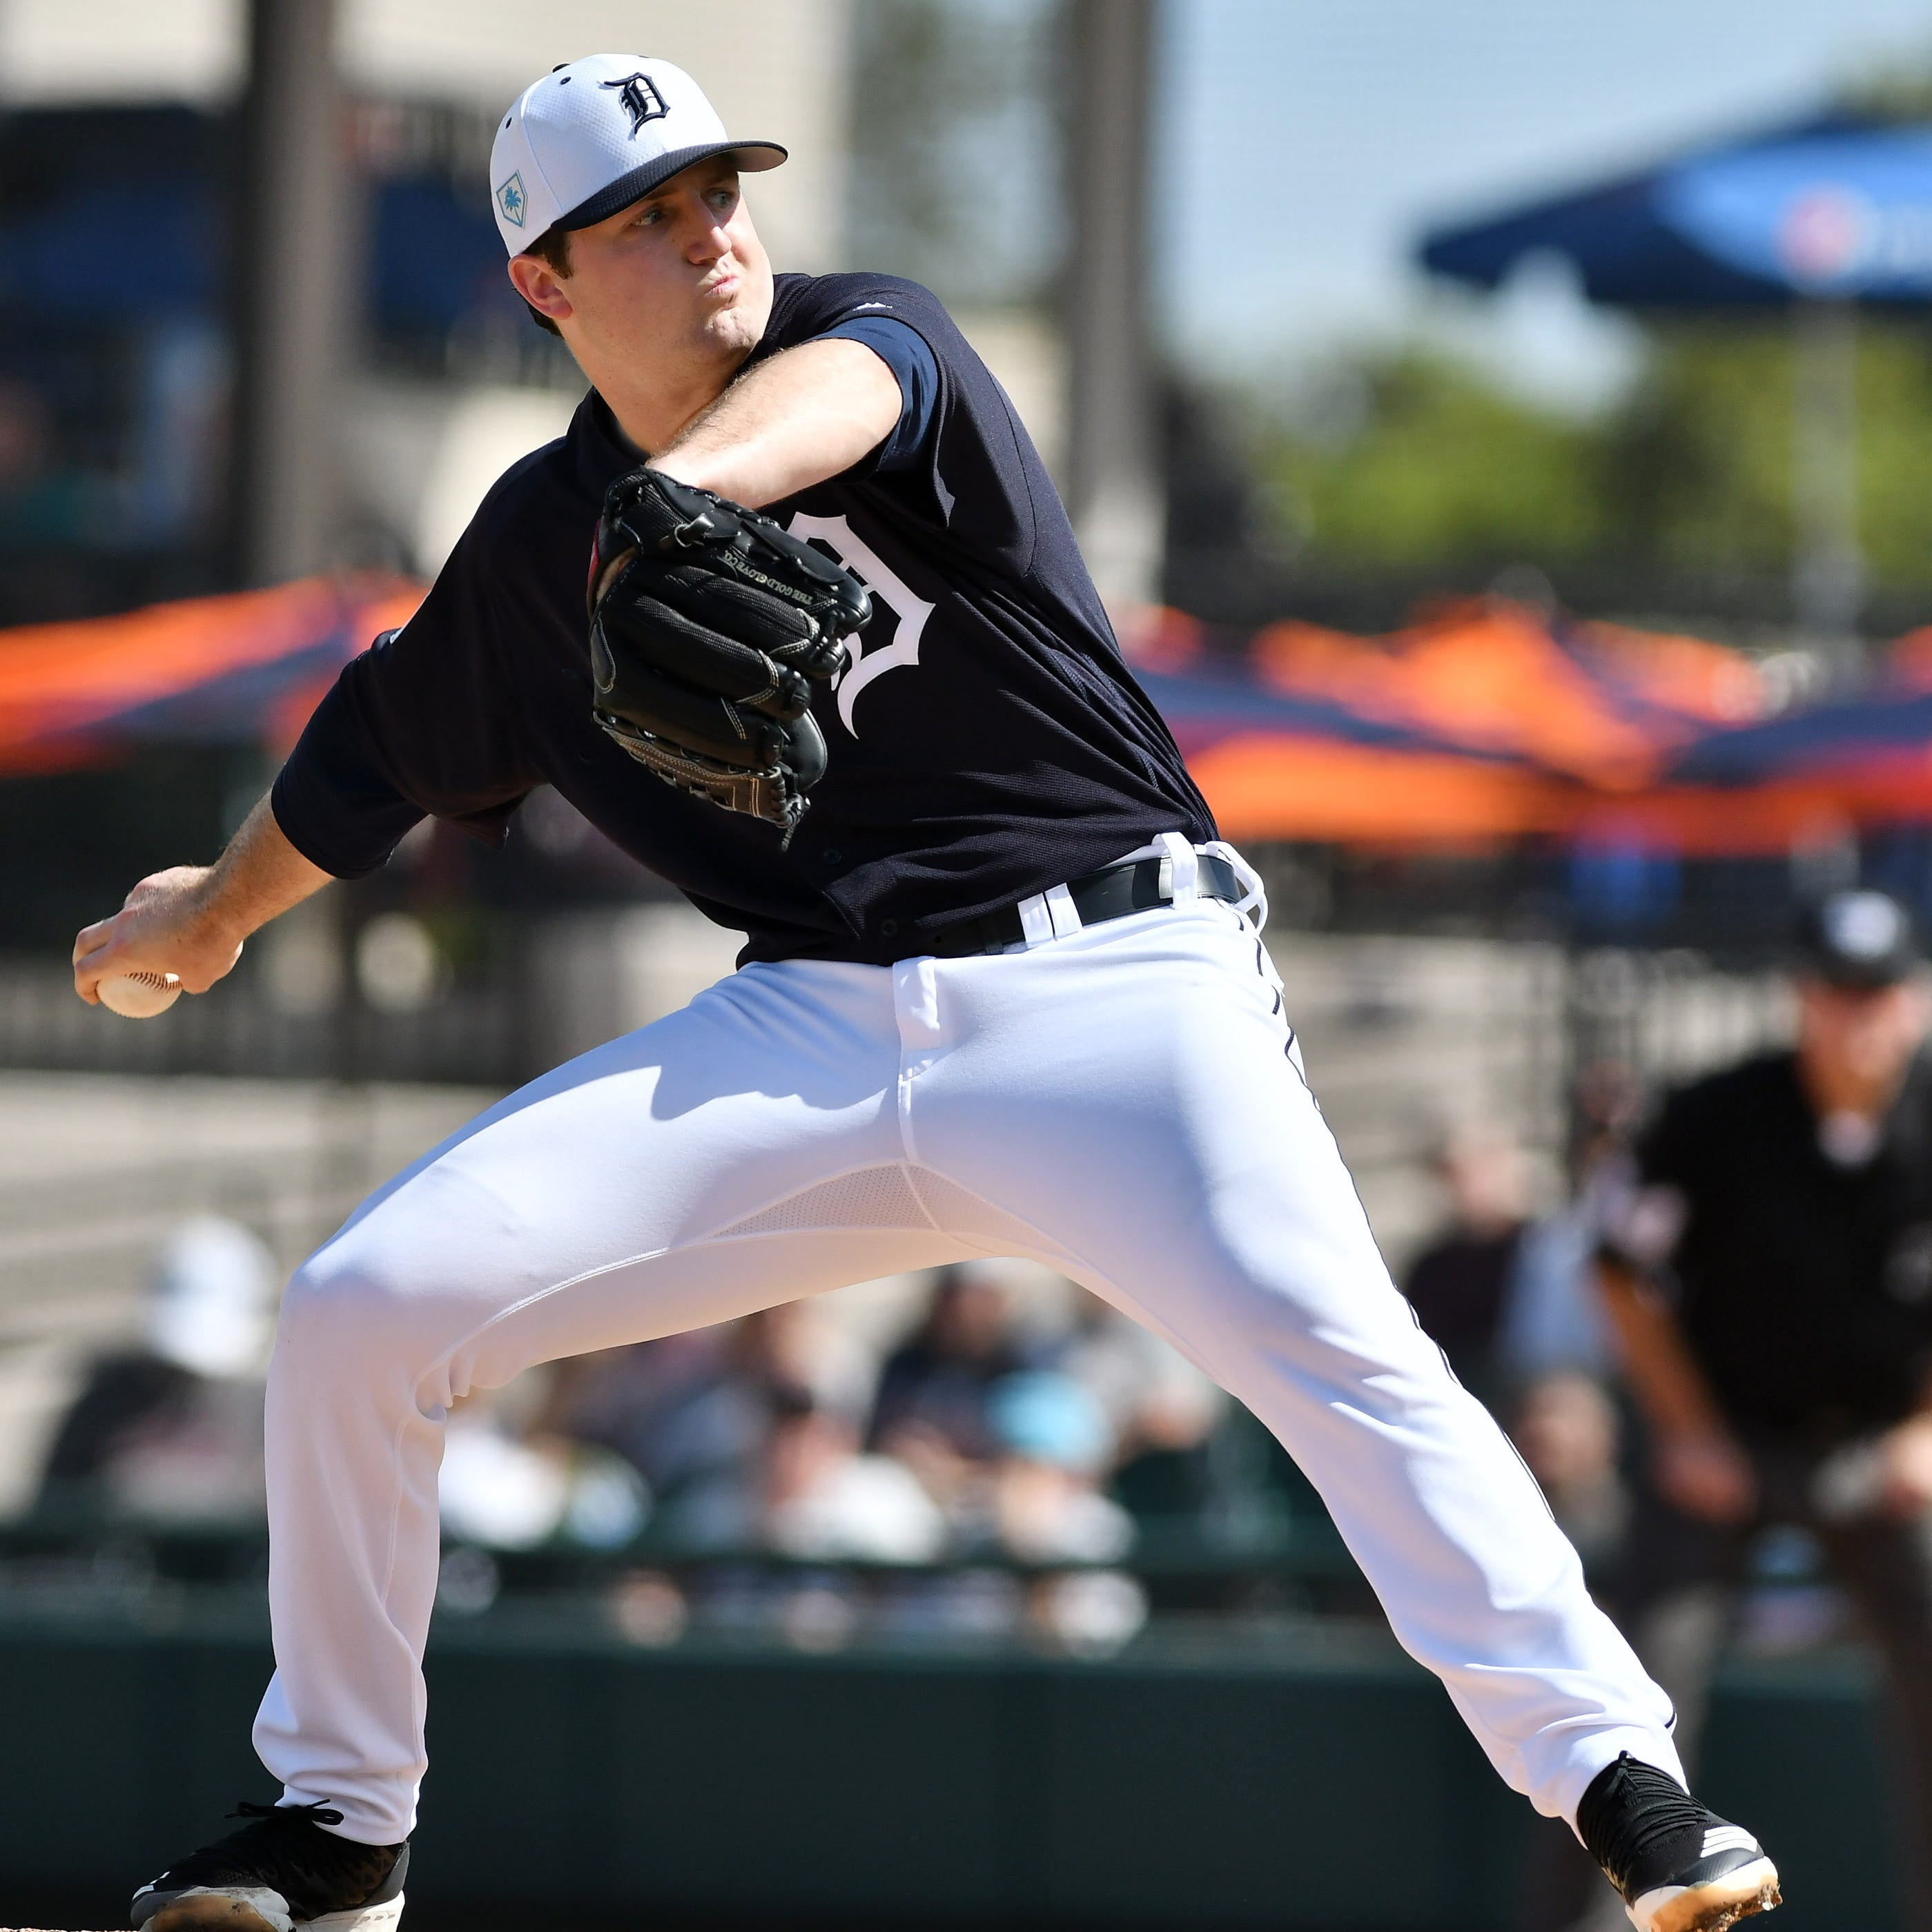 It's a learning day for top pick Casey Mize as Tigers romp in exhibition tune-up